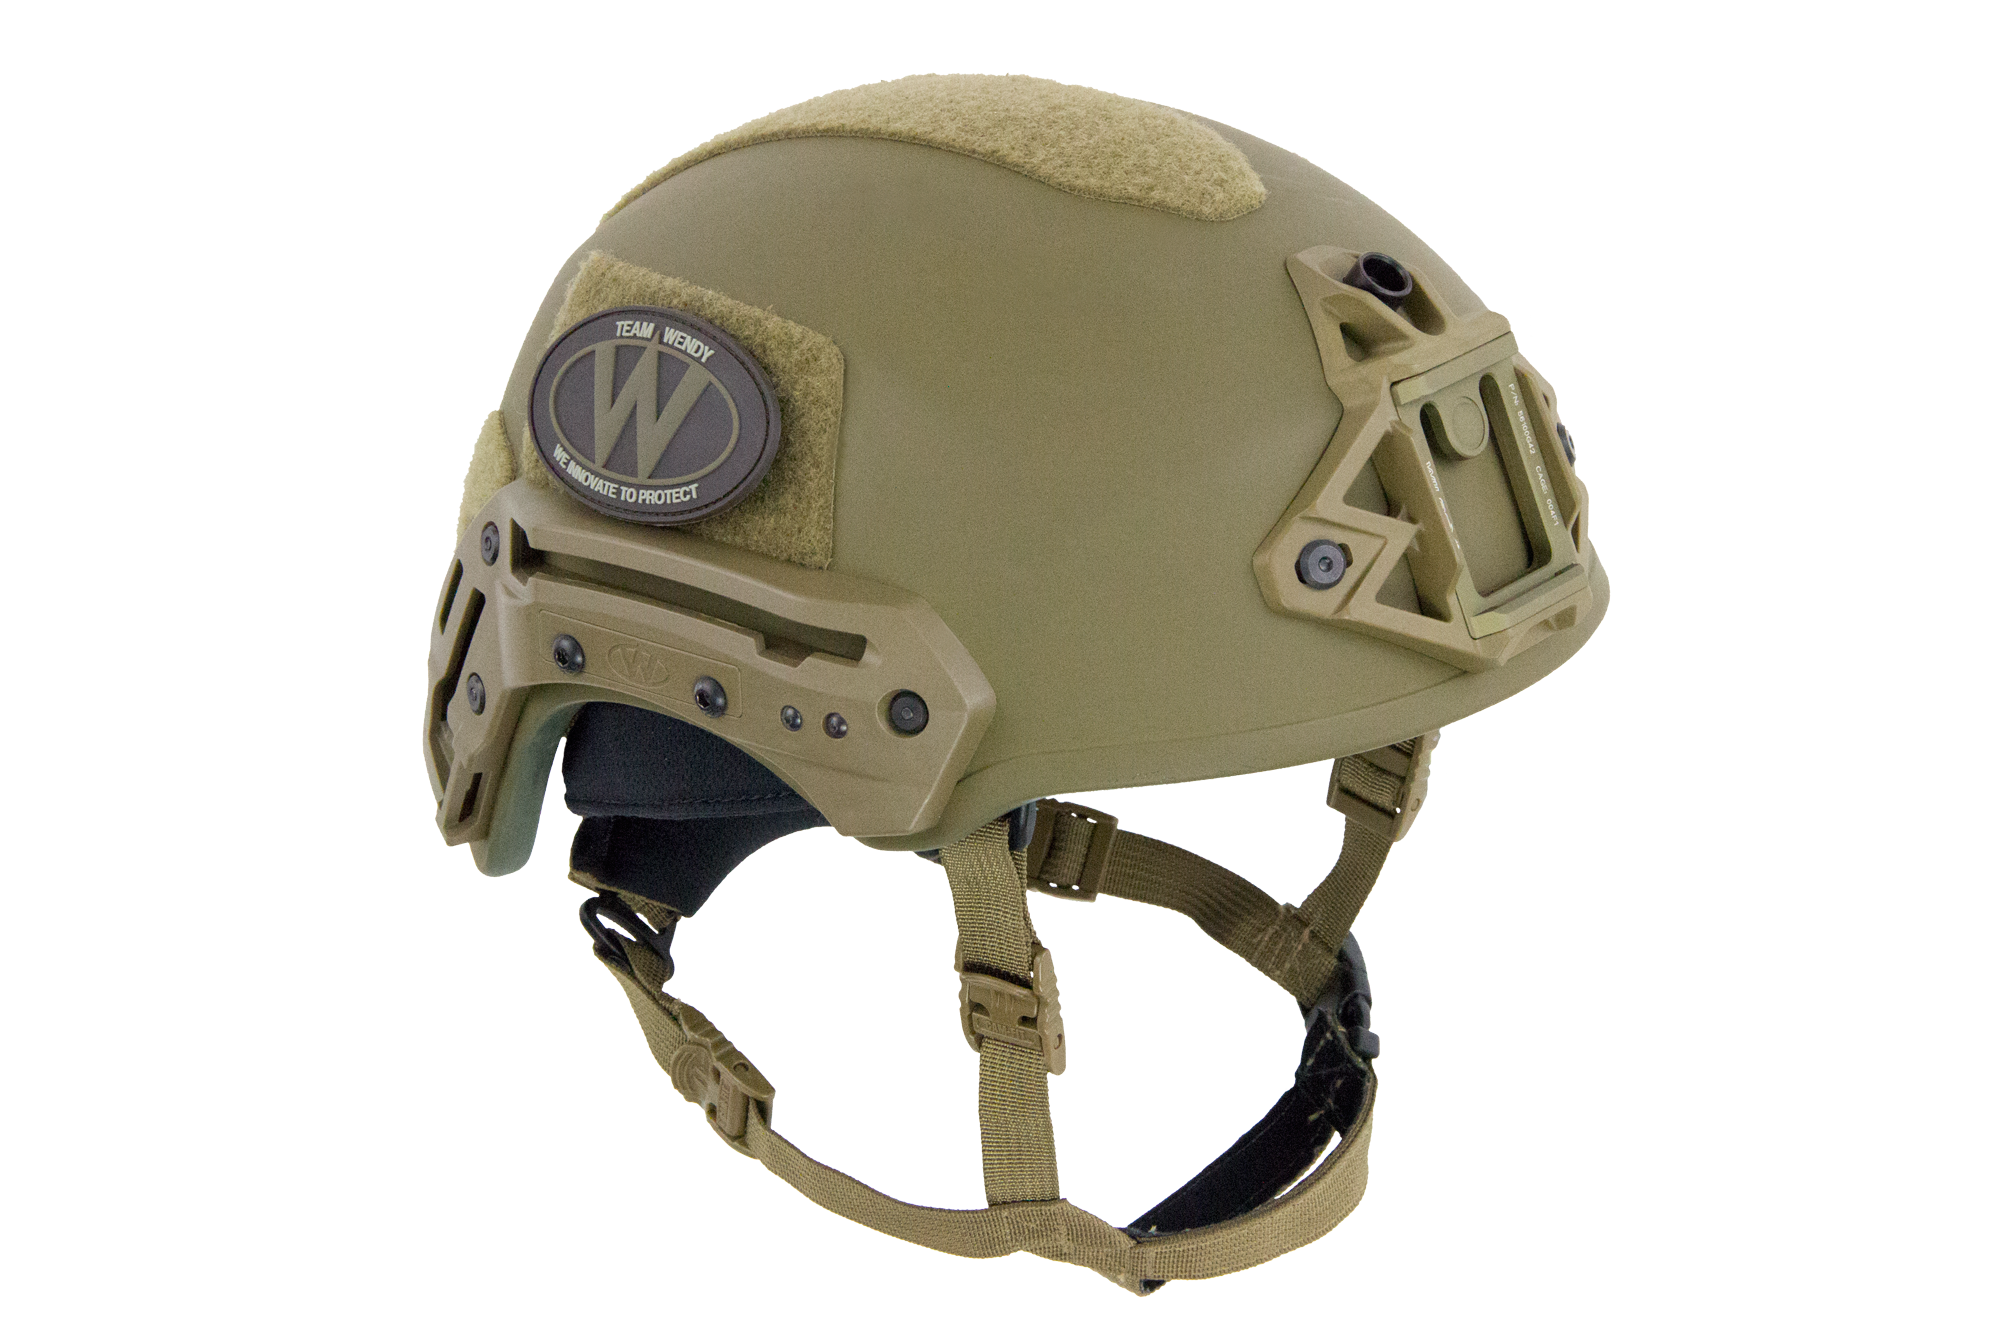 EXFIL® Ballistic helmet now available from Team Wendy